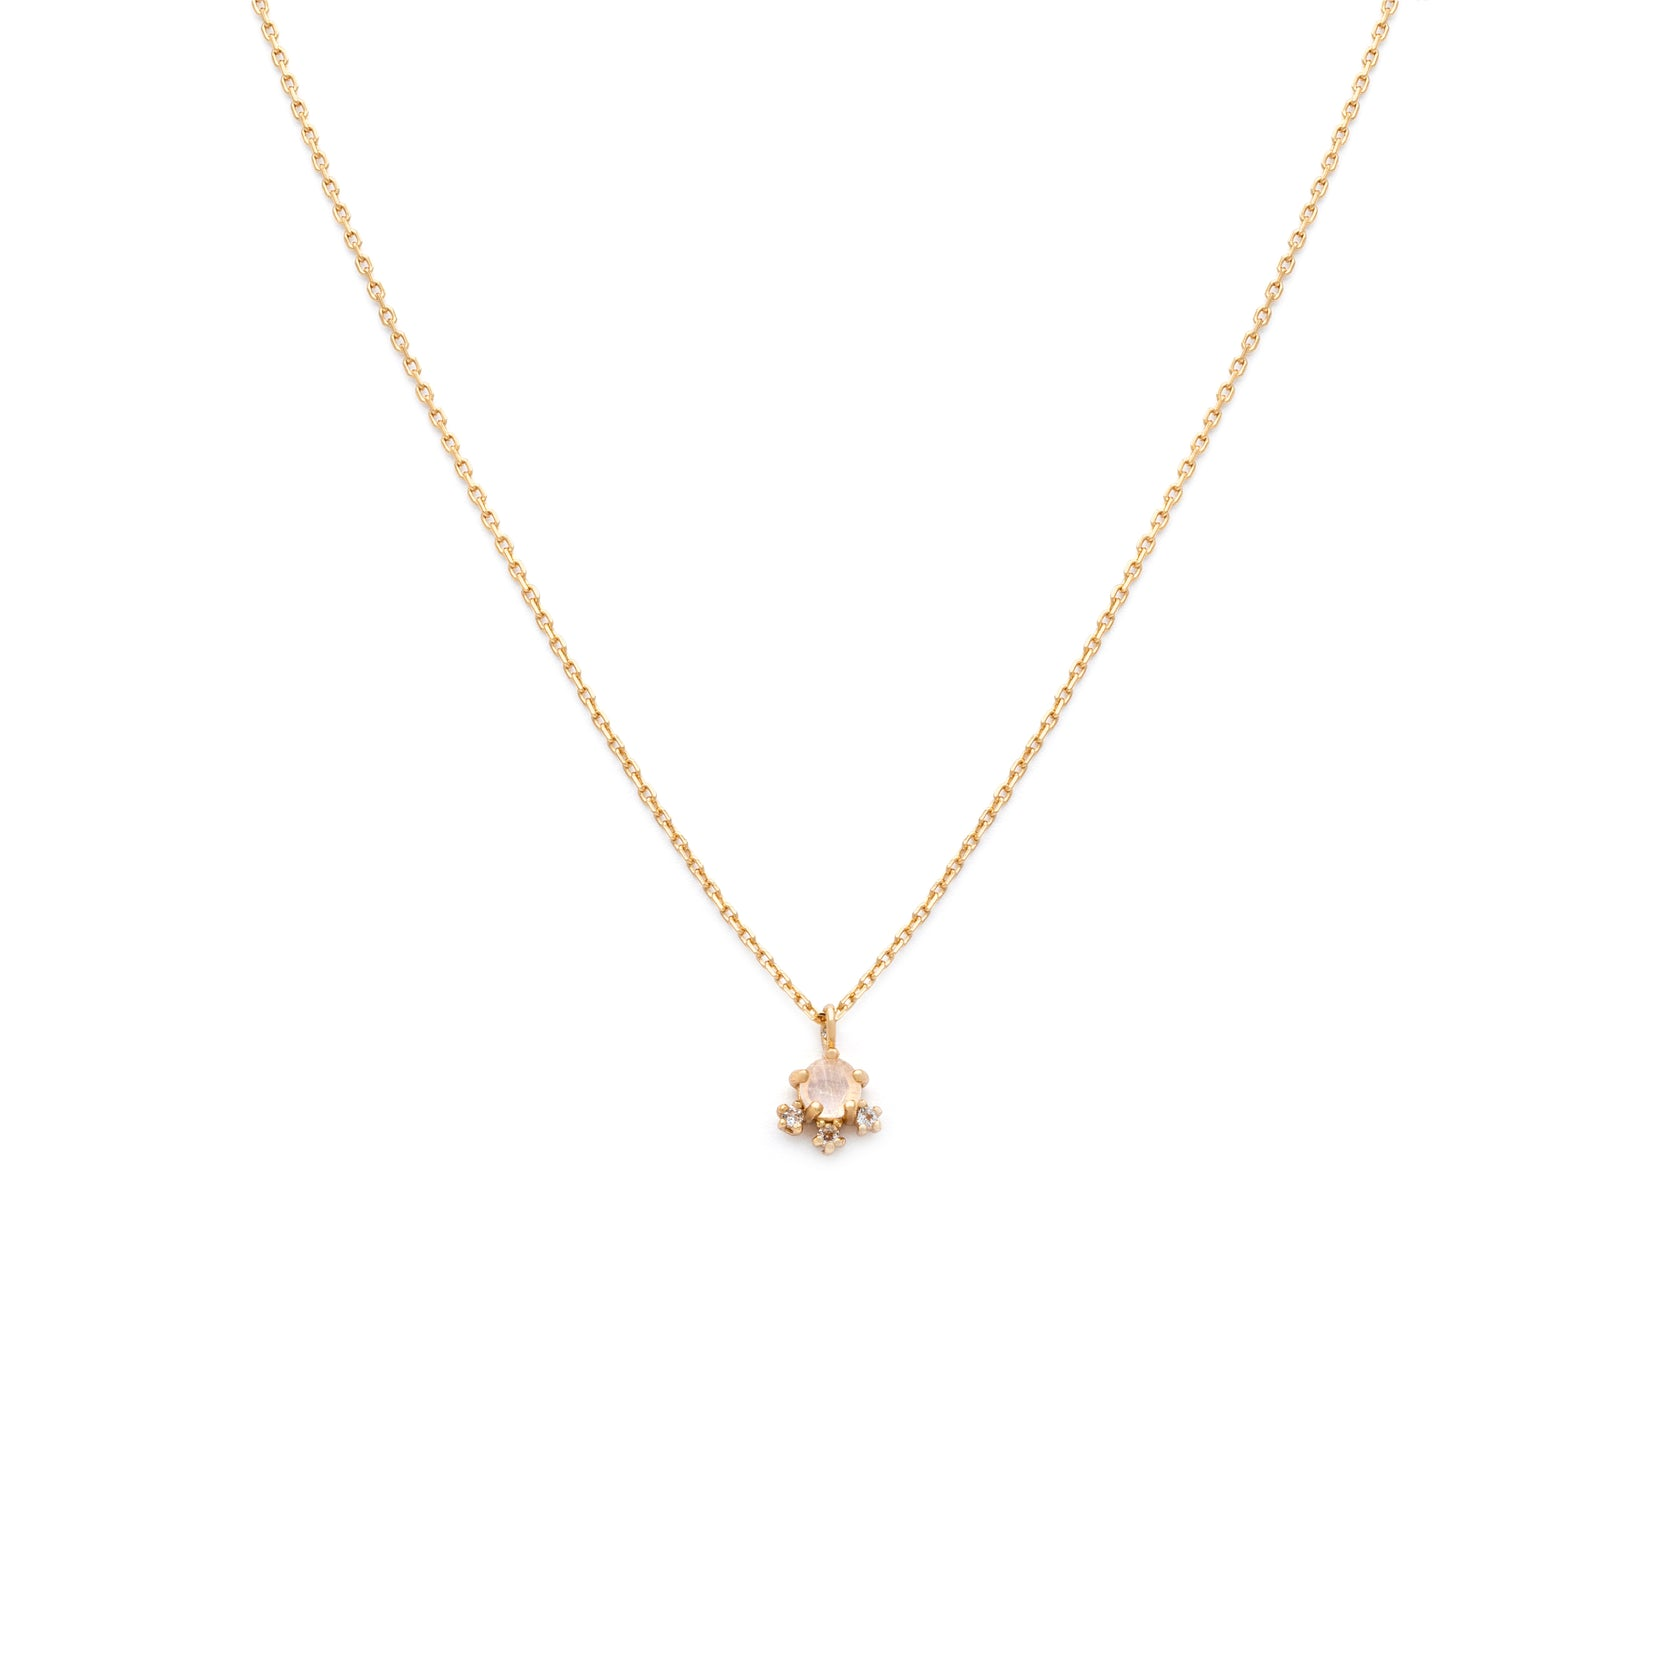 Venus Necklace - Gold Vermeil